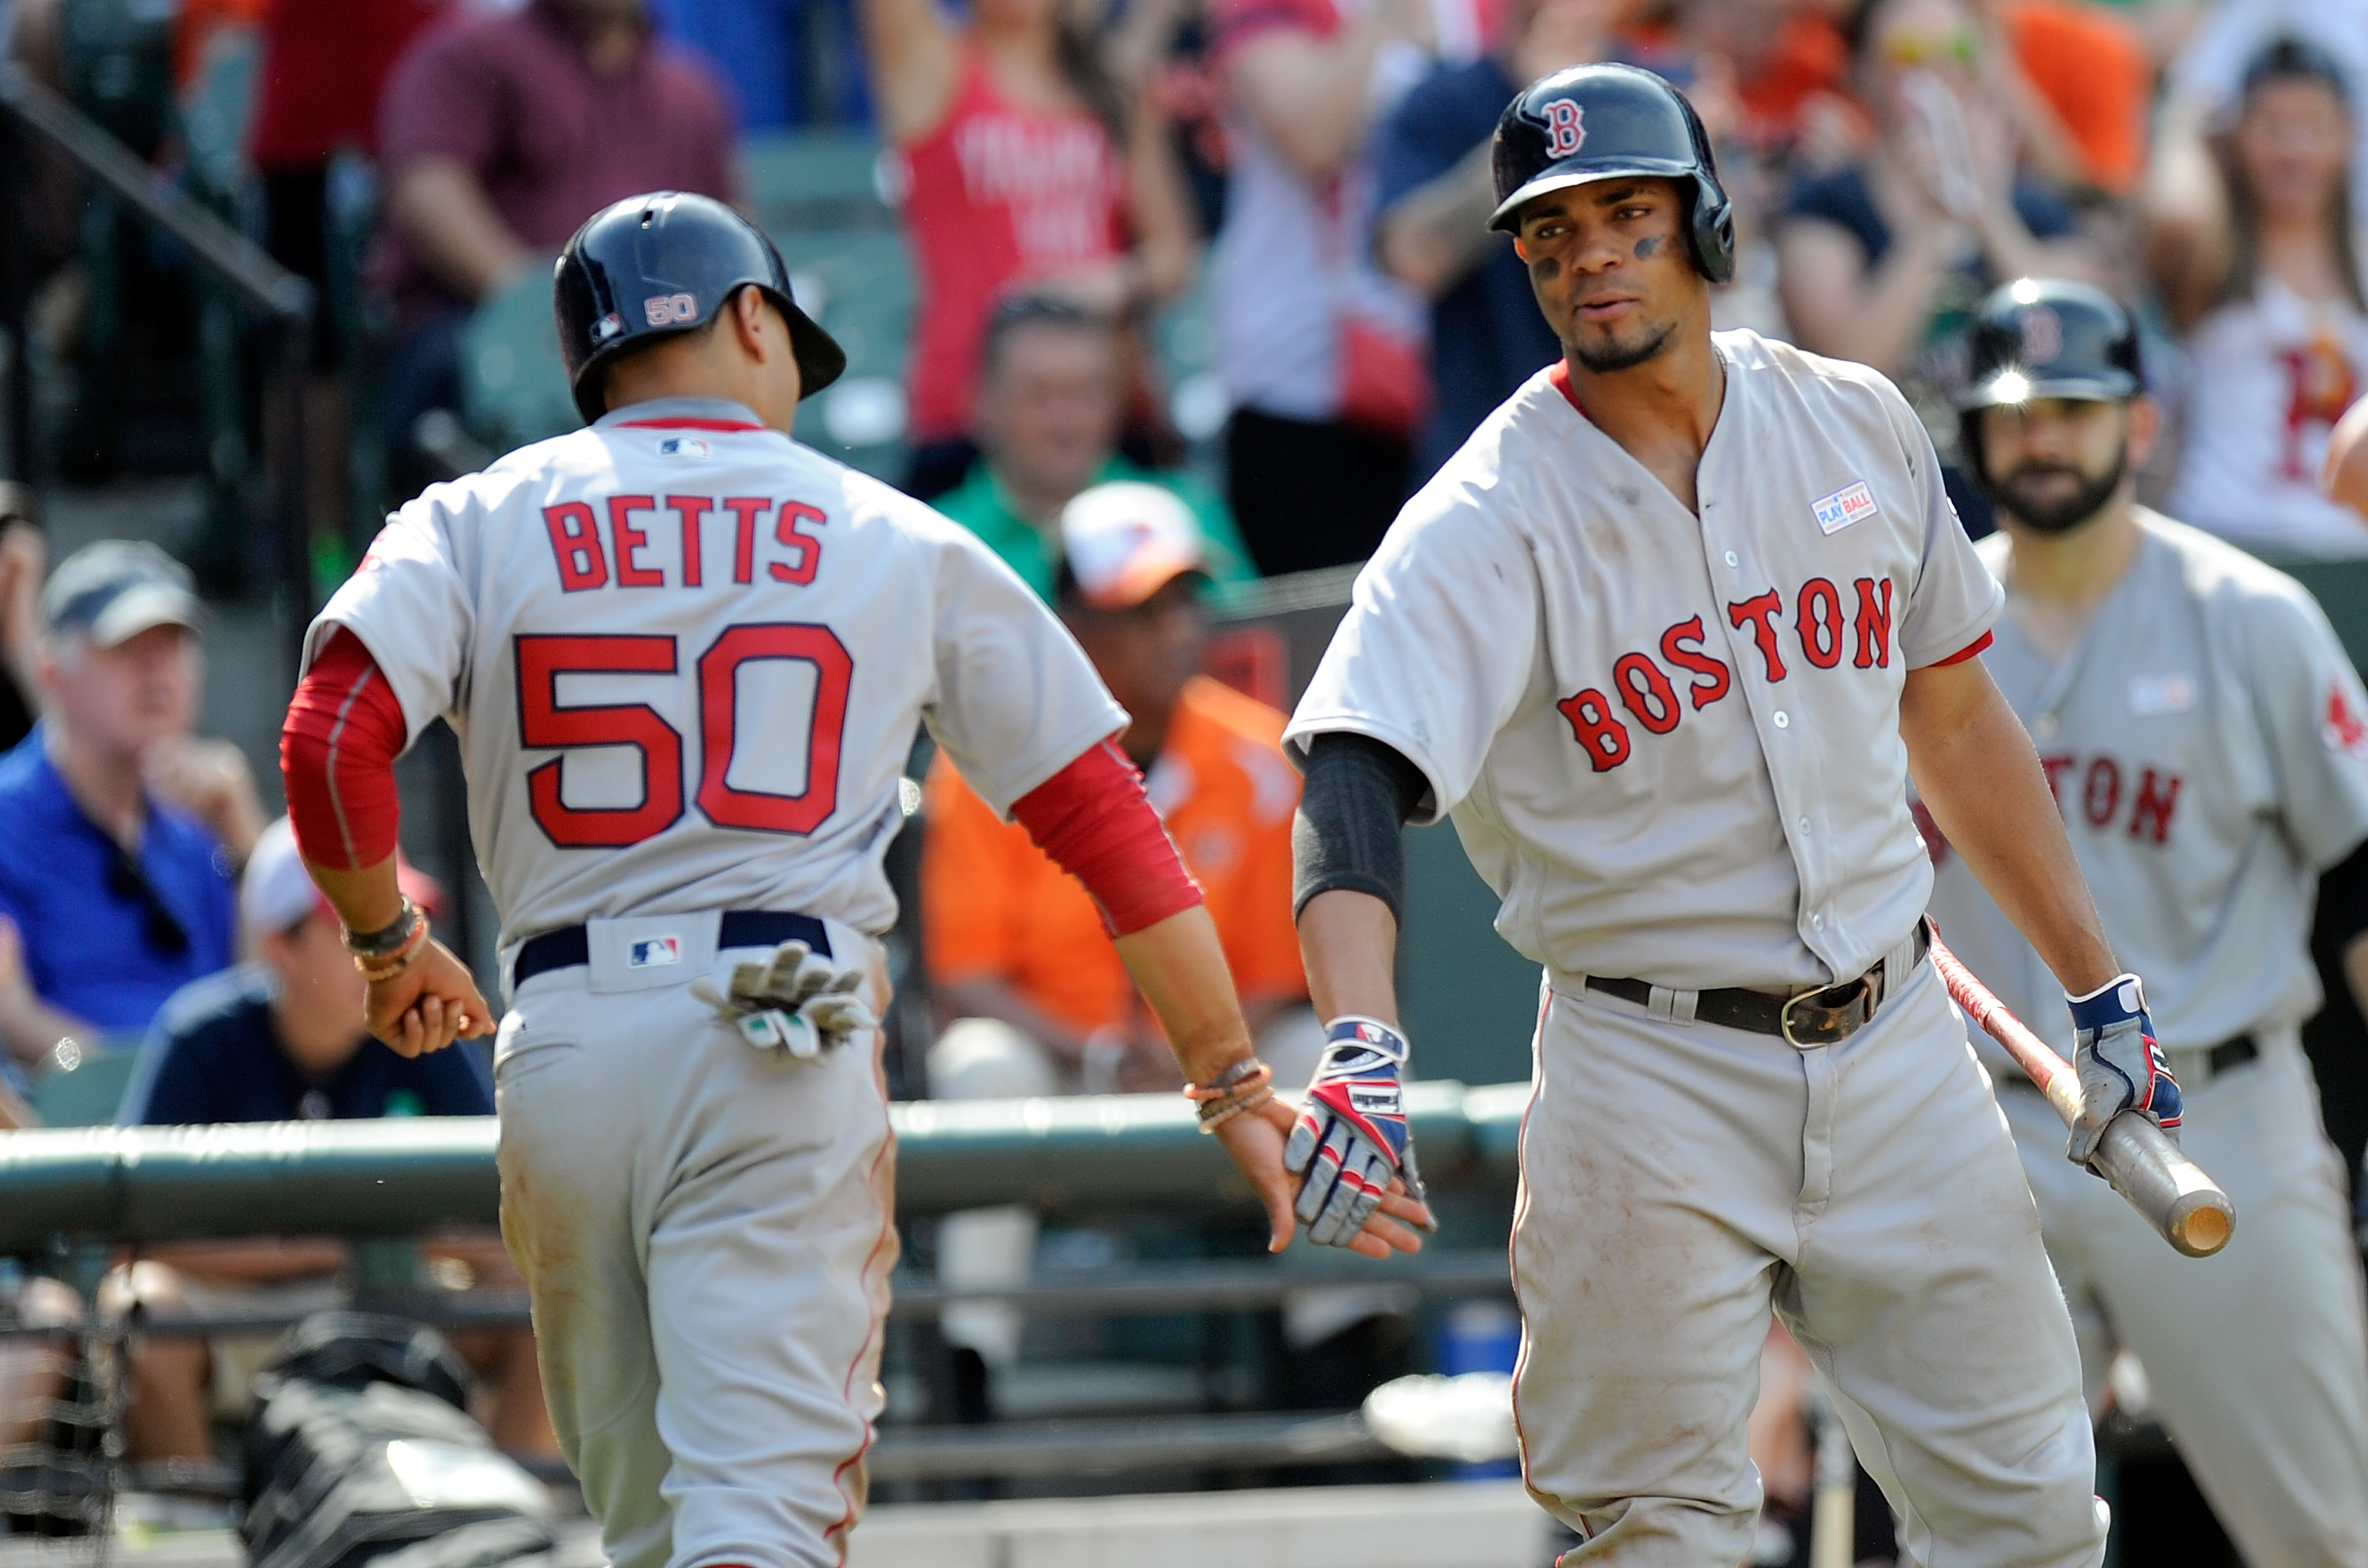 Red Sox players who should make 2017 MLB All-Star roster